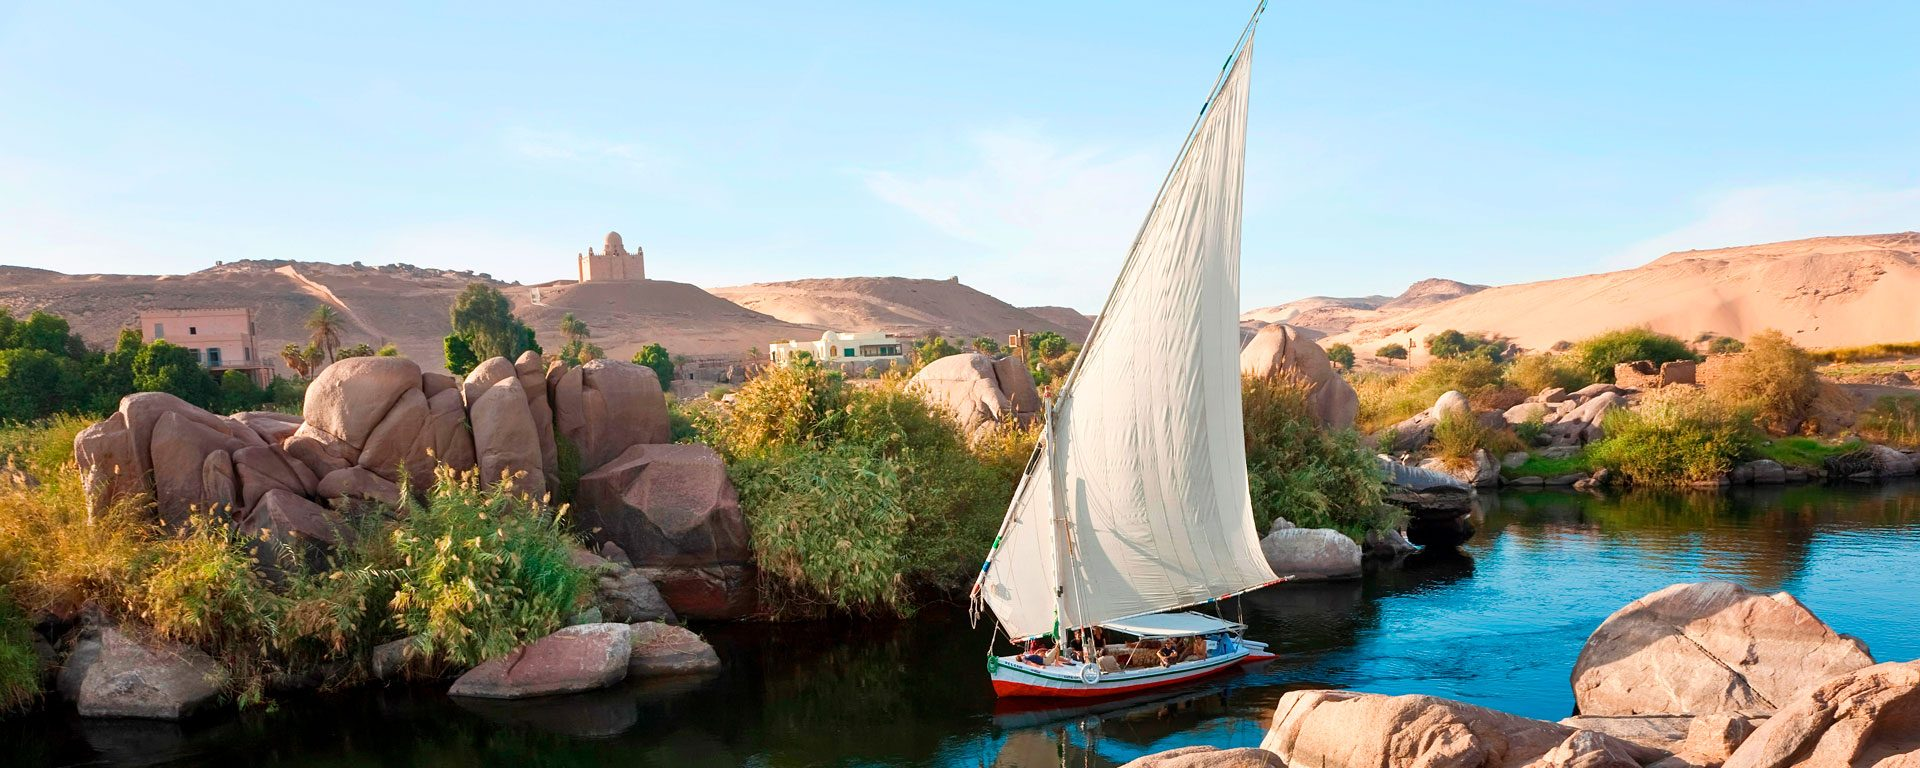 Felucca sailboats on the Nile River in Aswan, Egypt